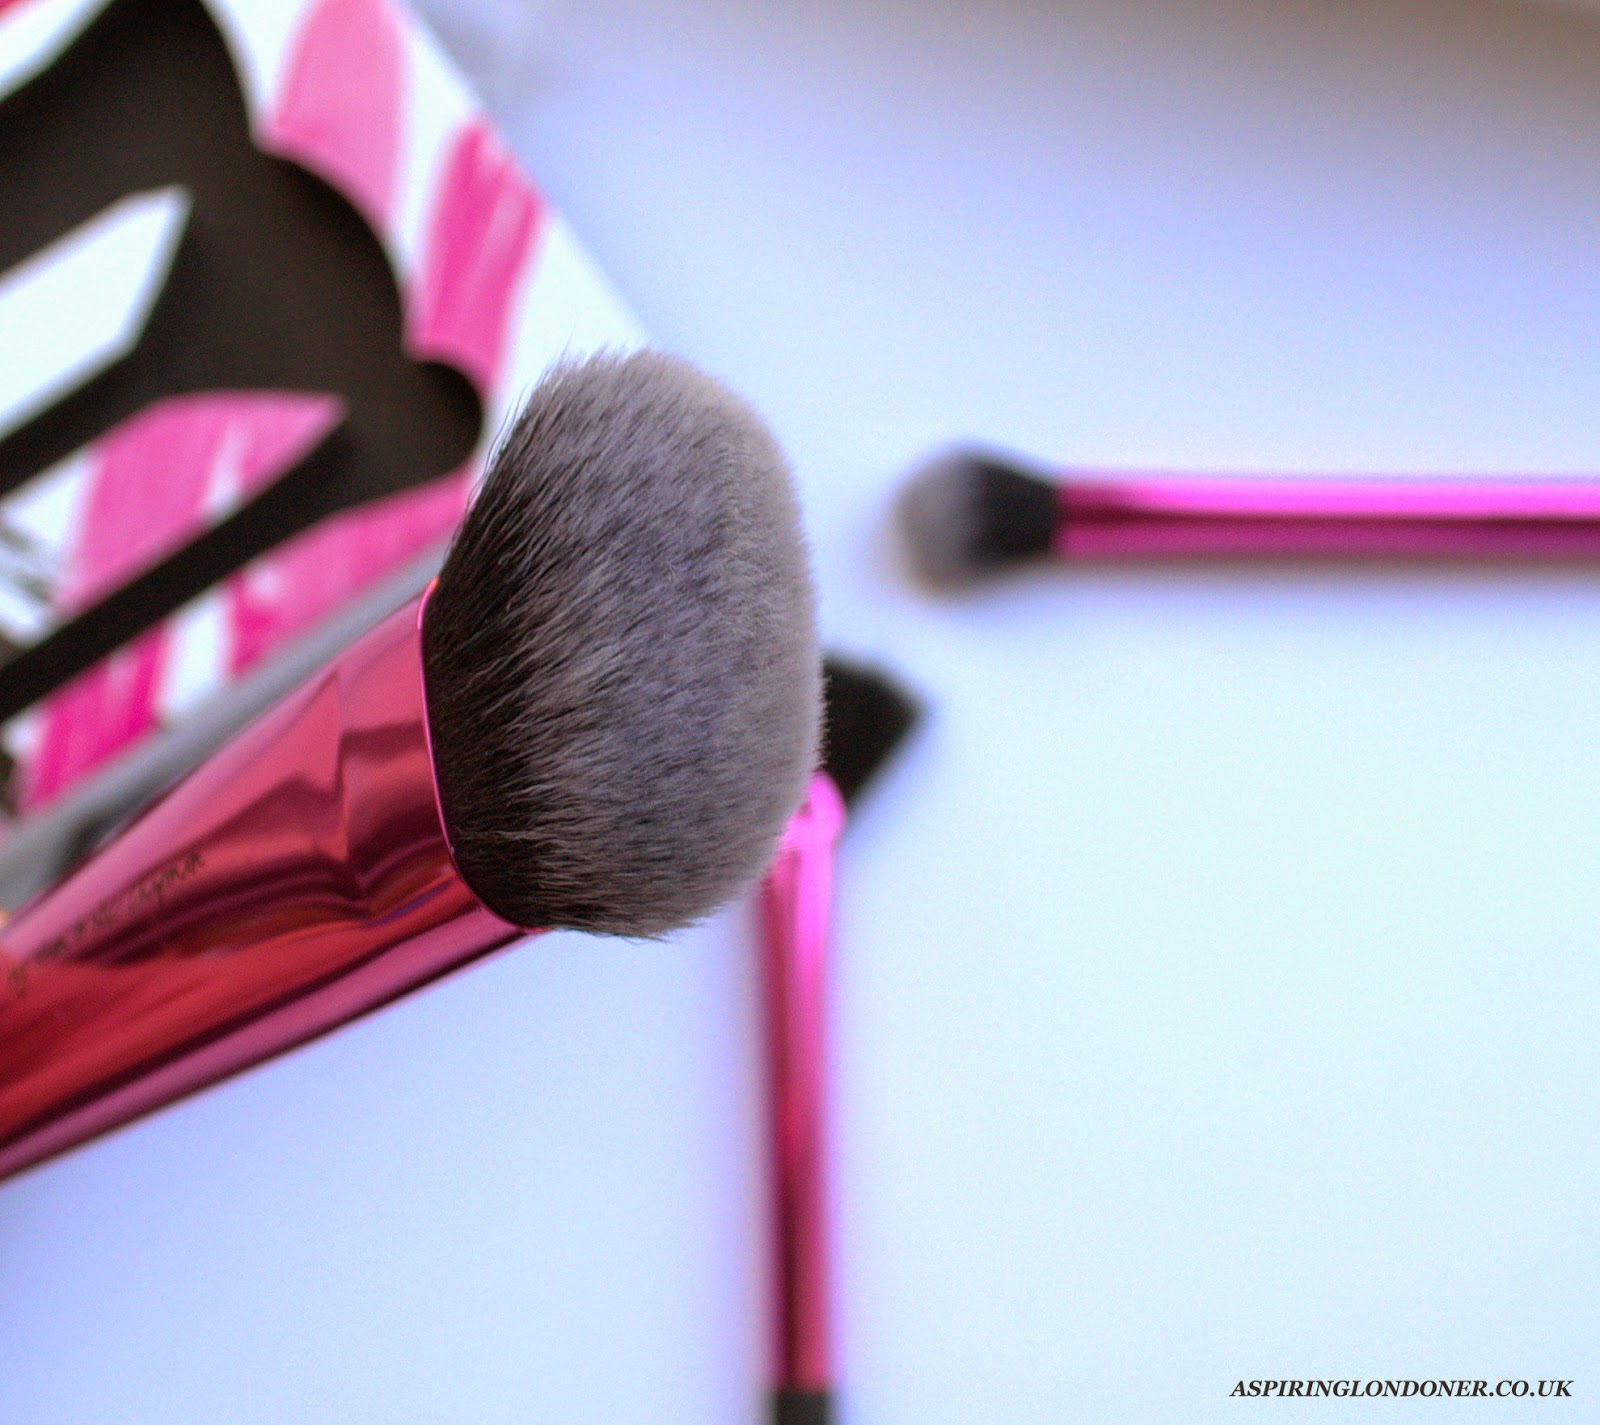 Real Techniques Sculpting Makeup Brush Review - Aspiring Londoner